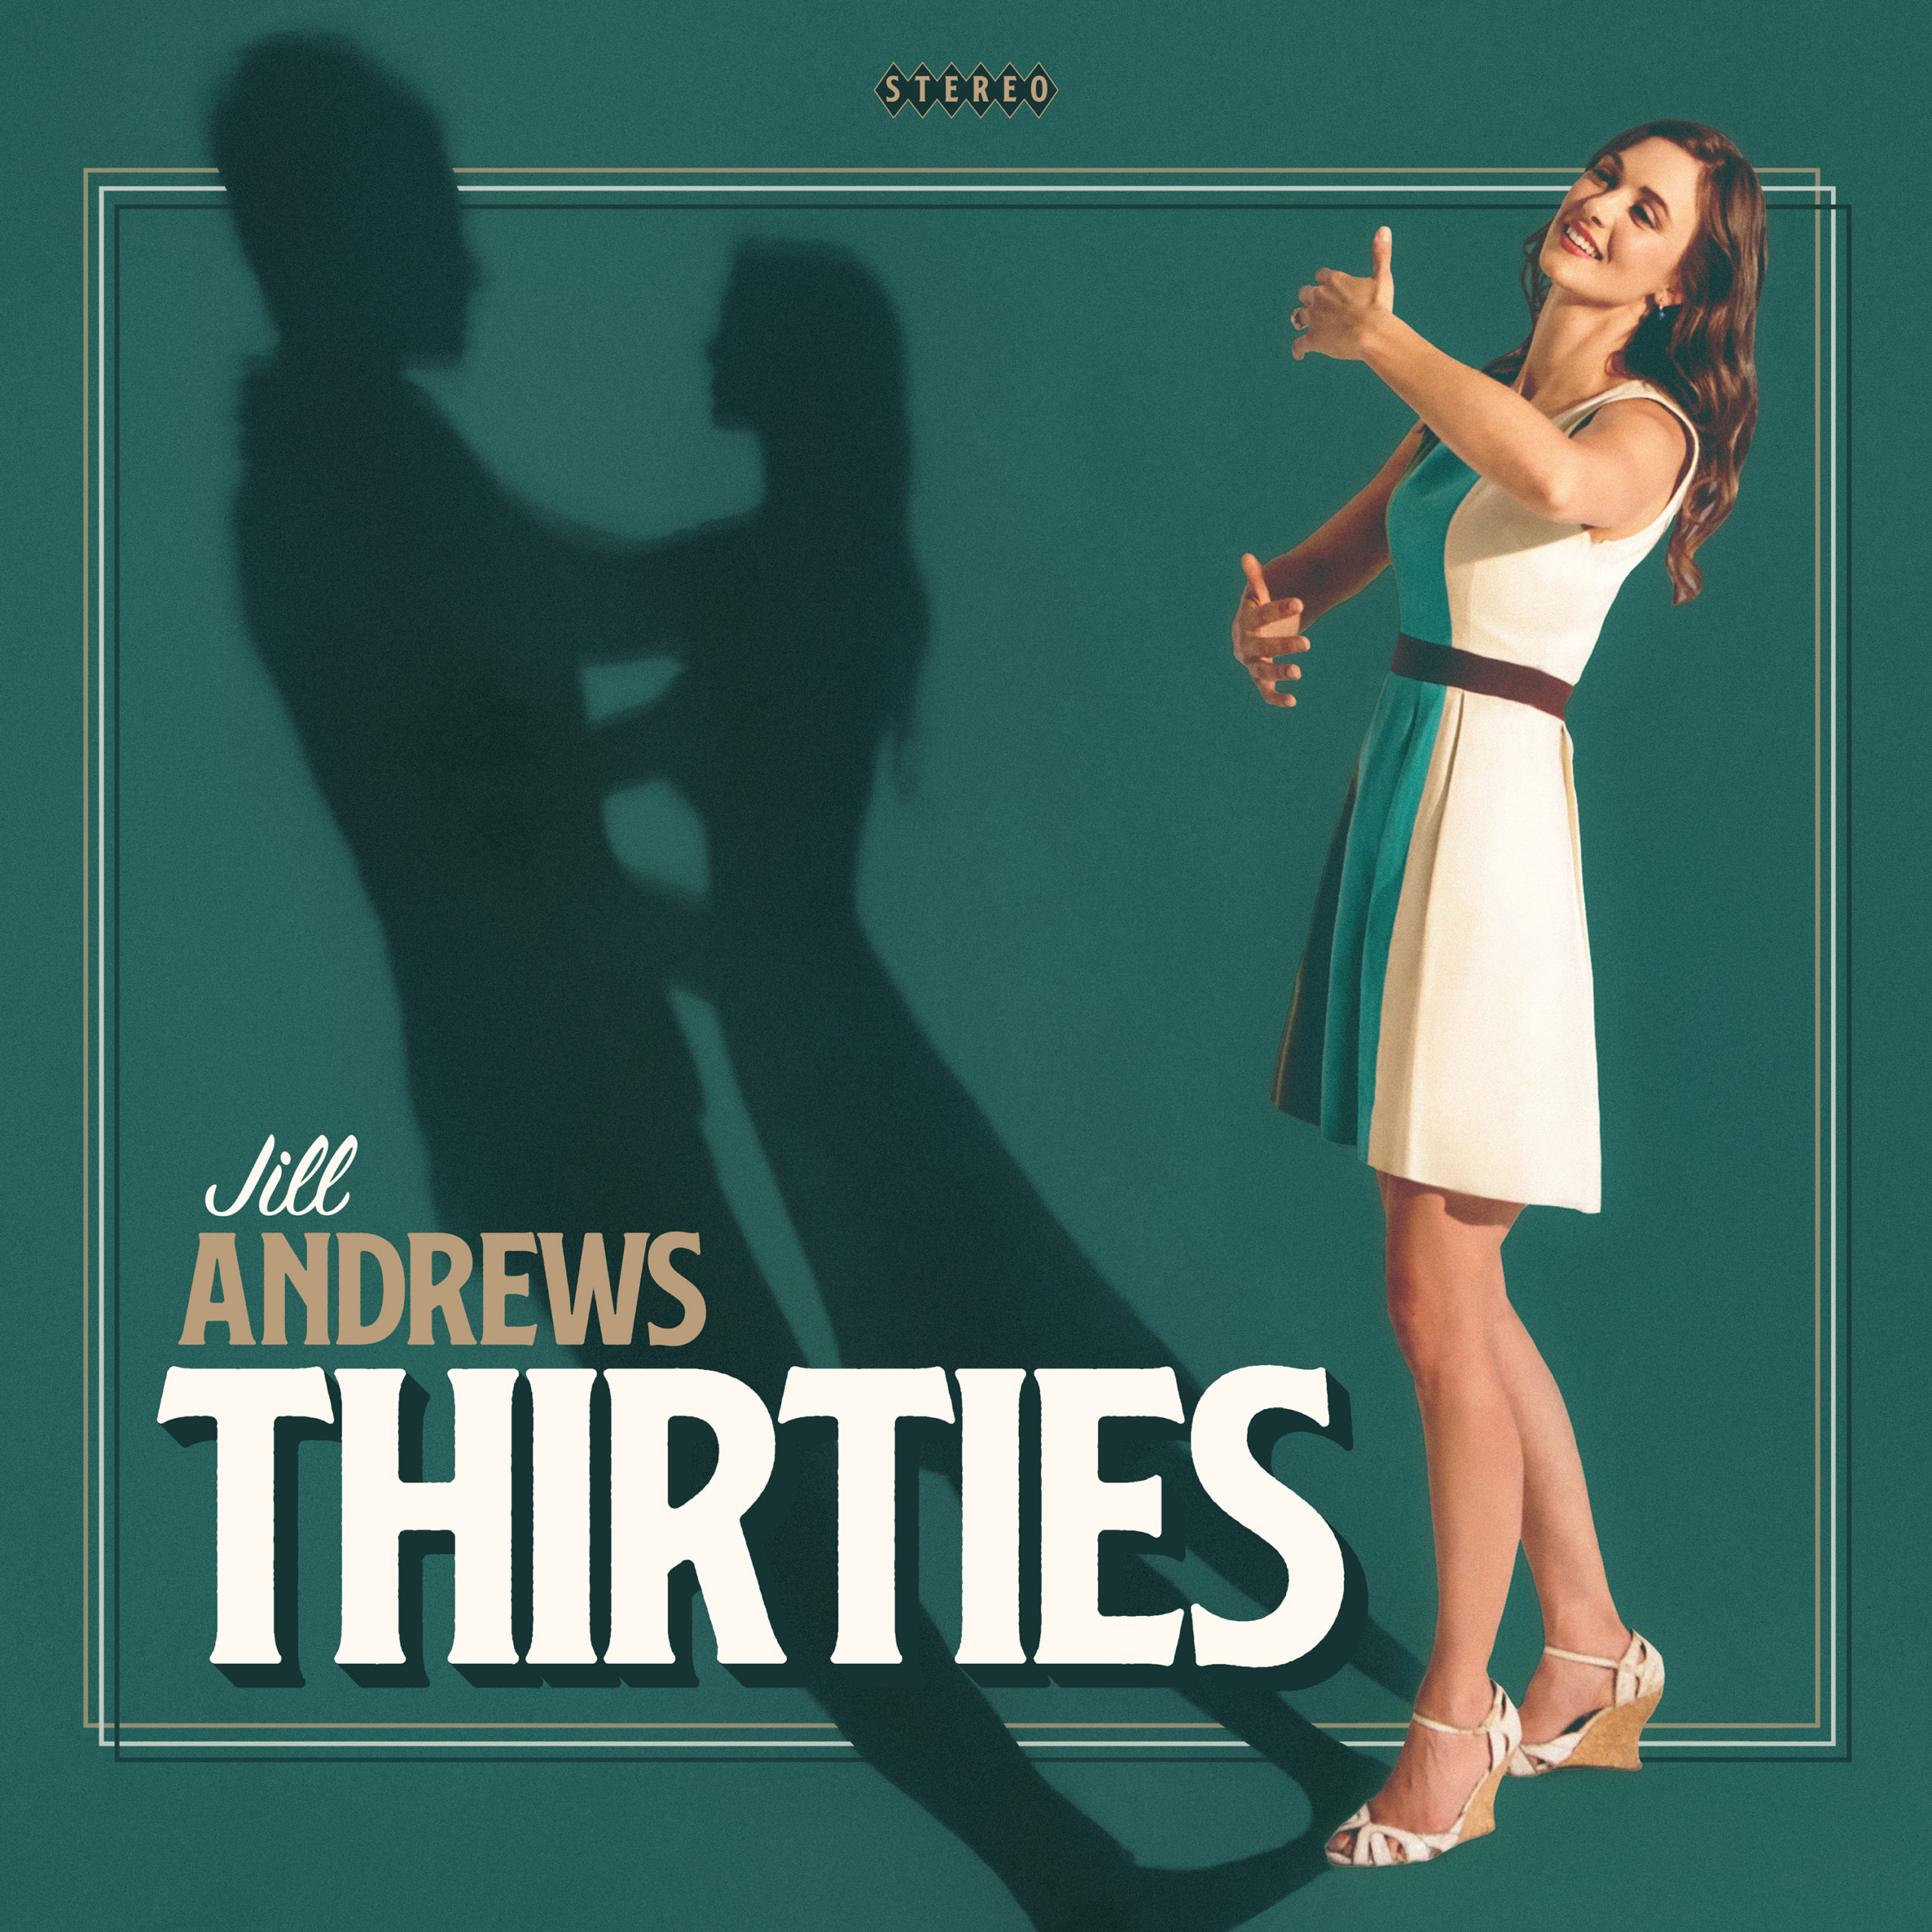 Jill Andrews: Thirties